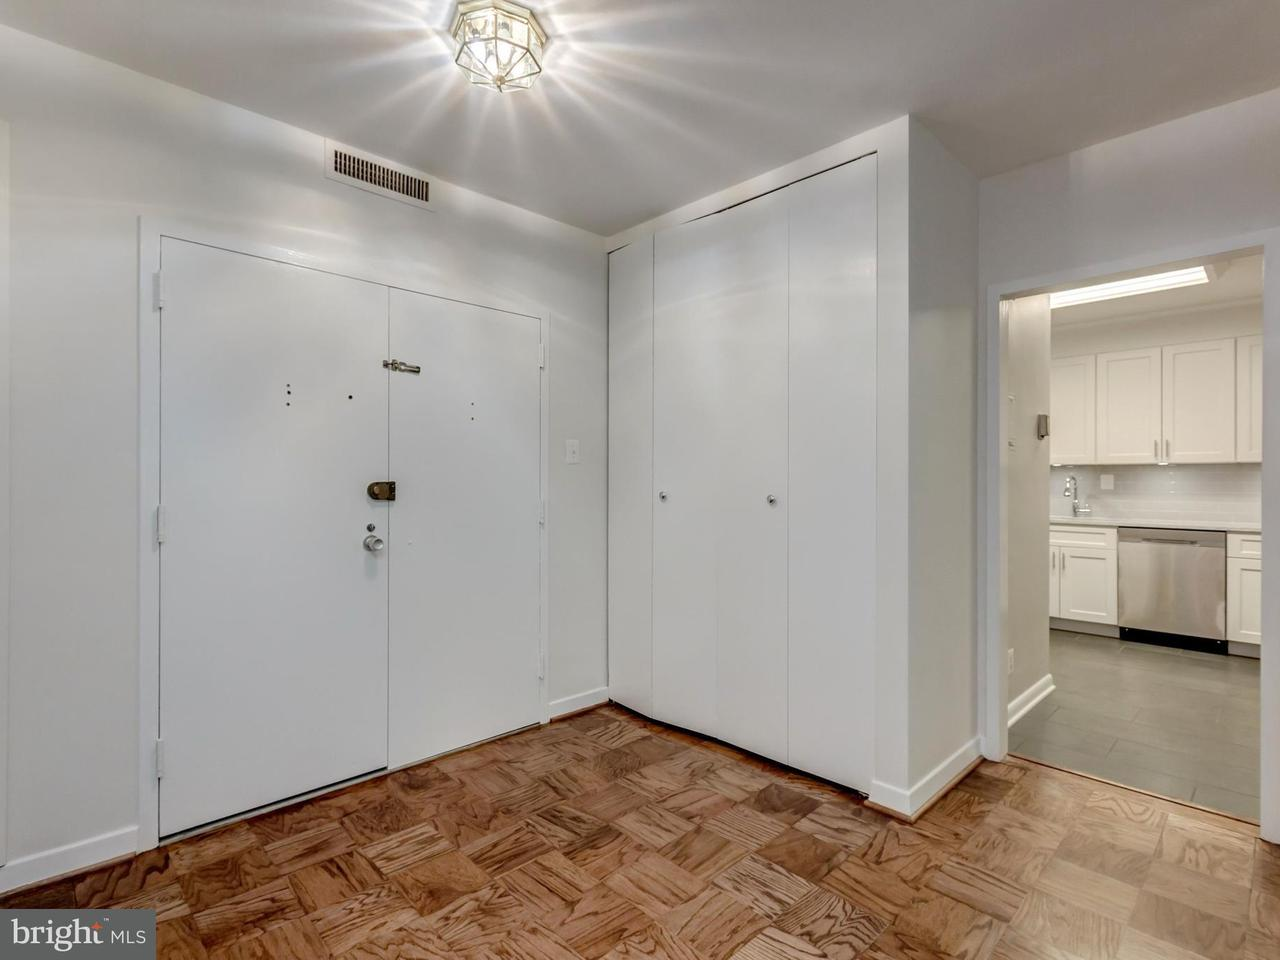 Additional photo for property listing at 4100 Cathedral Ave Nw #604 4100 Cathedral Ave Nw #604 Washington, Distrito De Columbia 20016 Estados Unidos